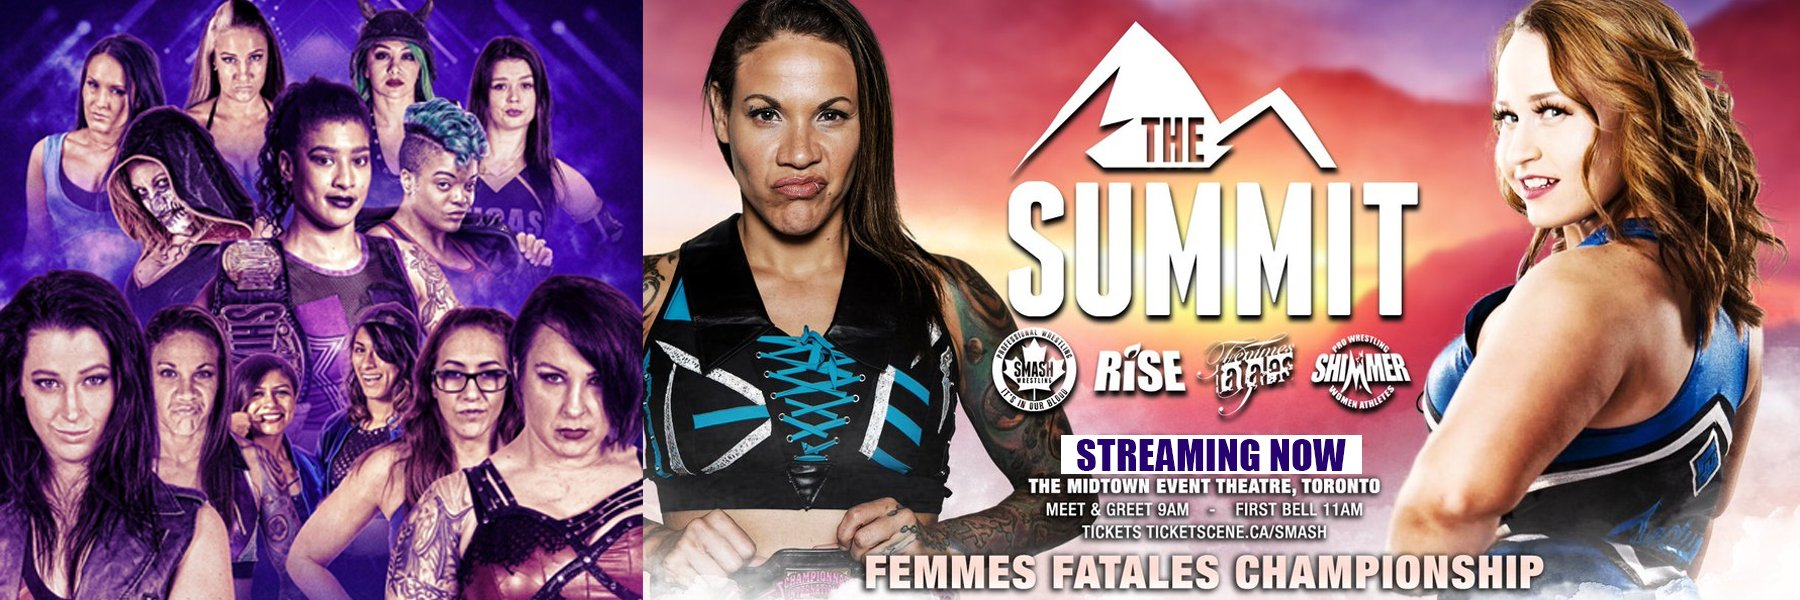 Watch RISE The Summit! Mercedes Martinez vs Jordynne Grace, Aerial Monroe